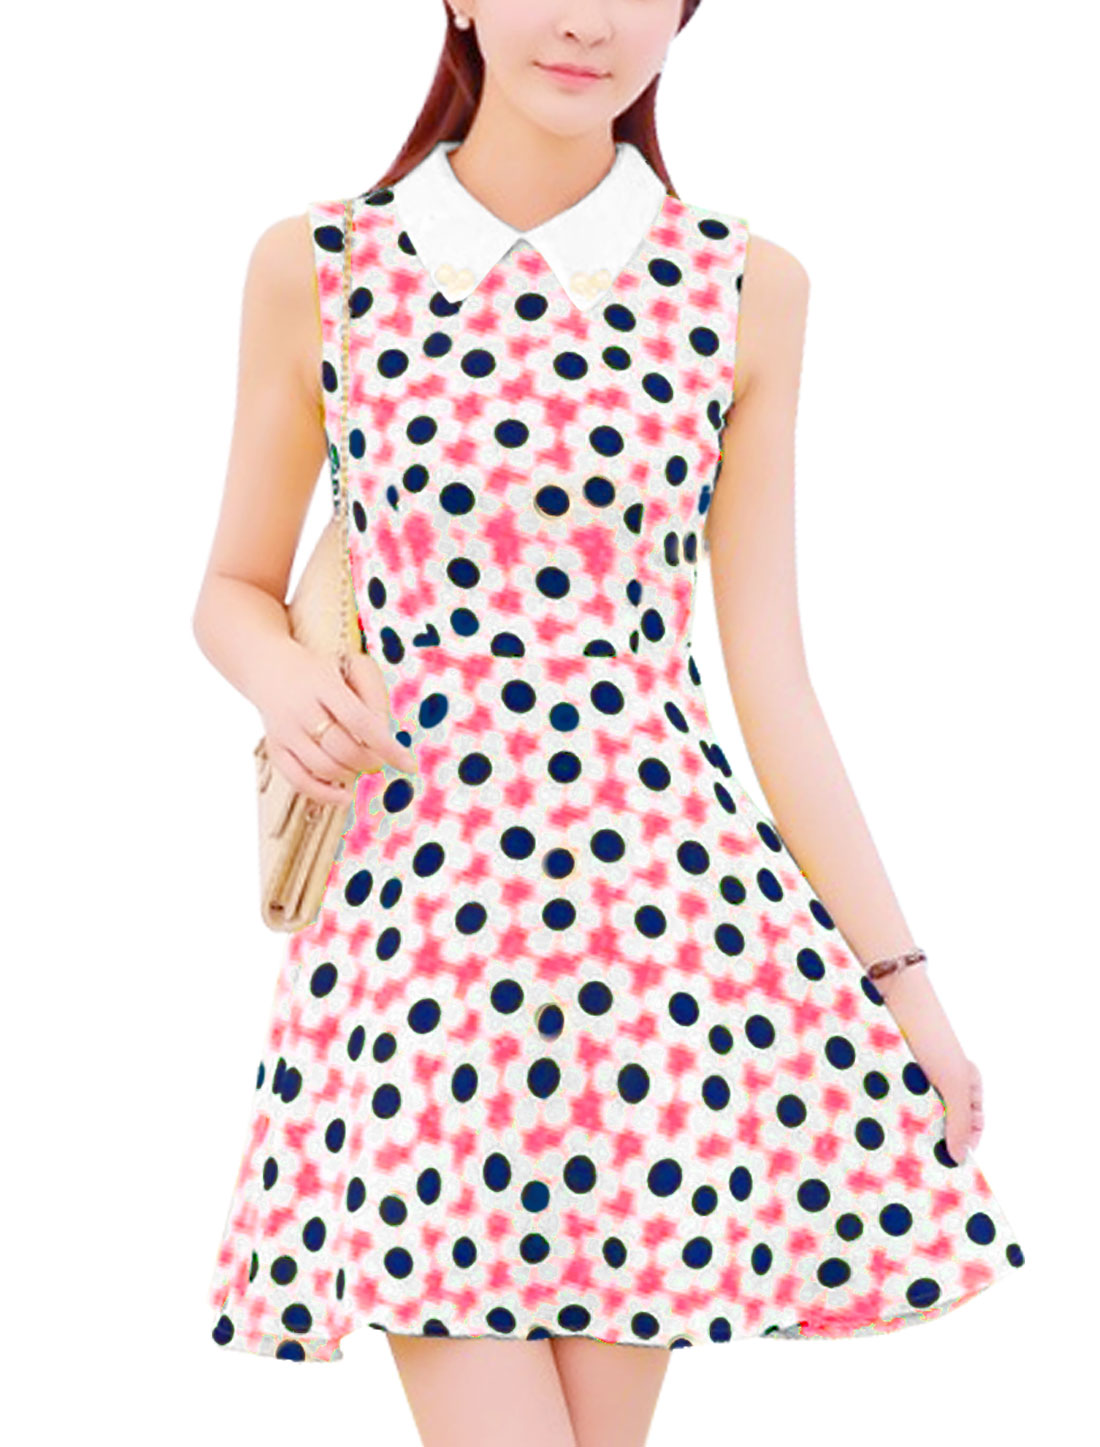 Women Peter Pan Collar Hidden Zipper Back Flower Pattern Dress Hot Pink S